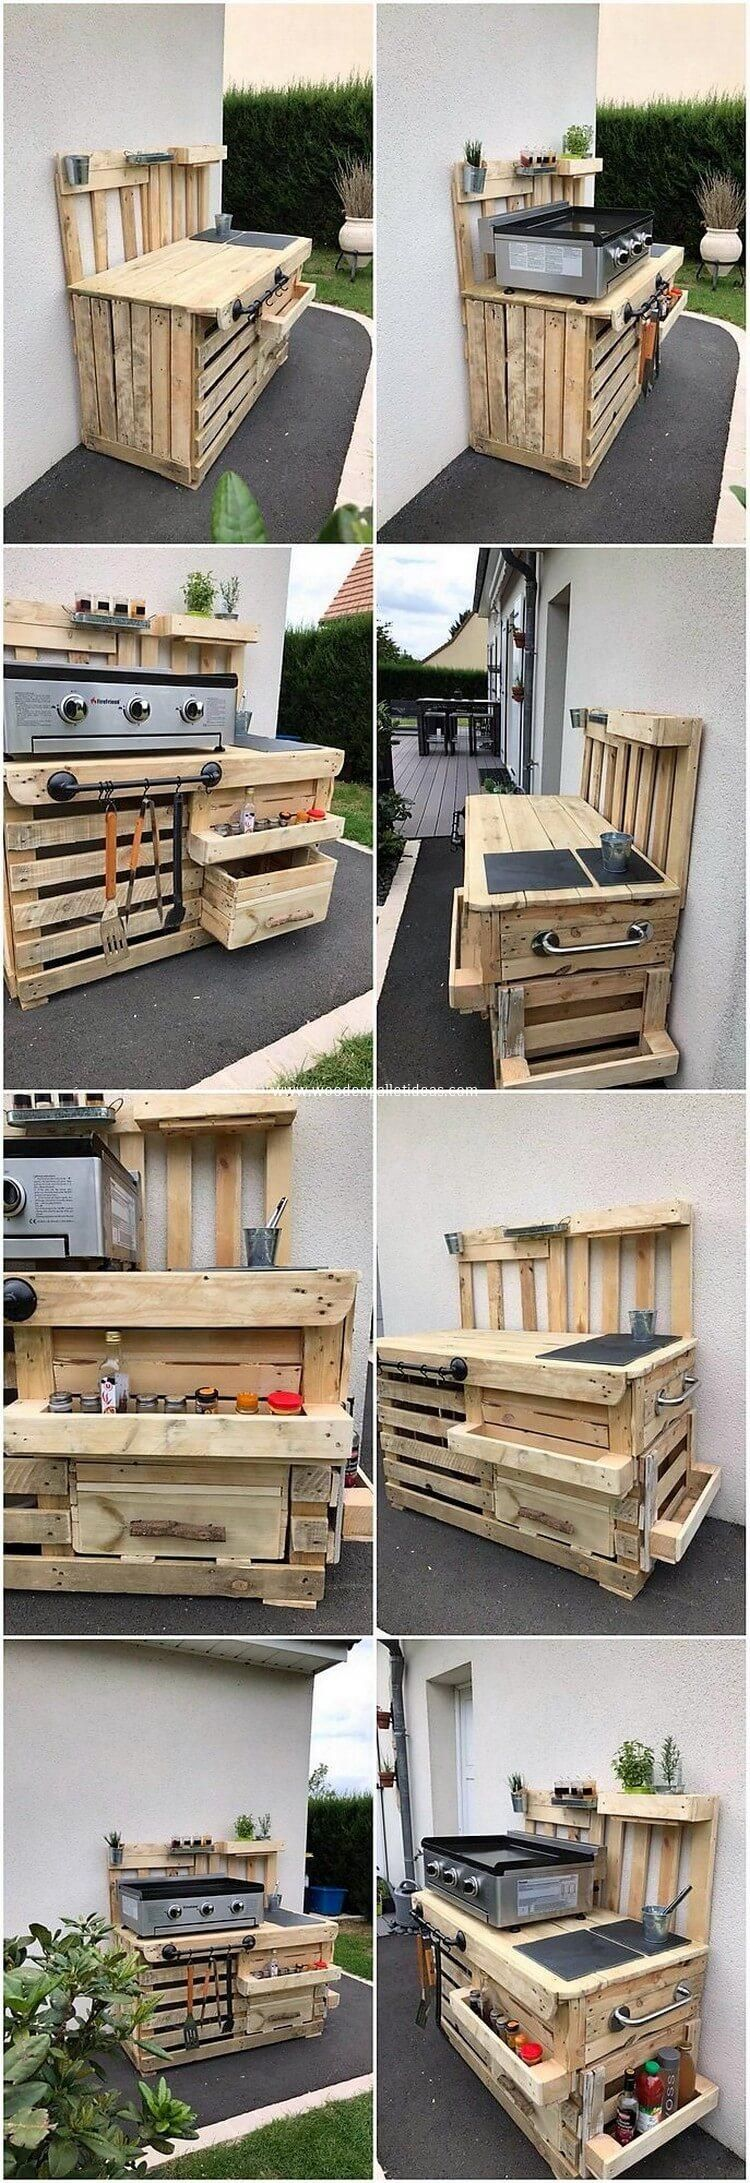 Recycled Wood Pallet Outdoor Kitchen Idea Pallet Outdoor Kitchen Ideas Pallet Outdoor Wood Pallets